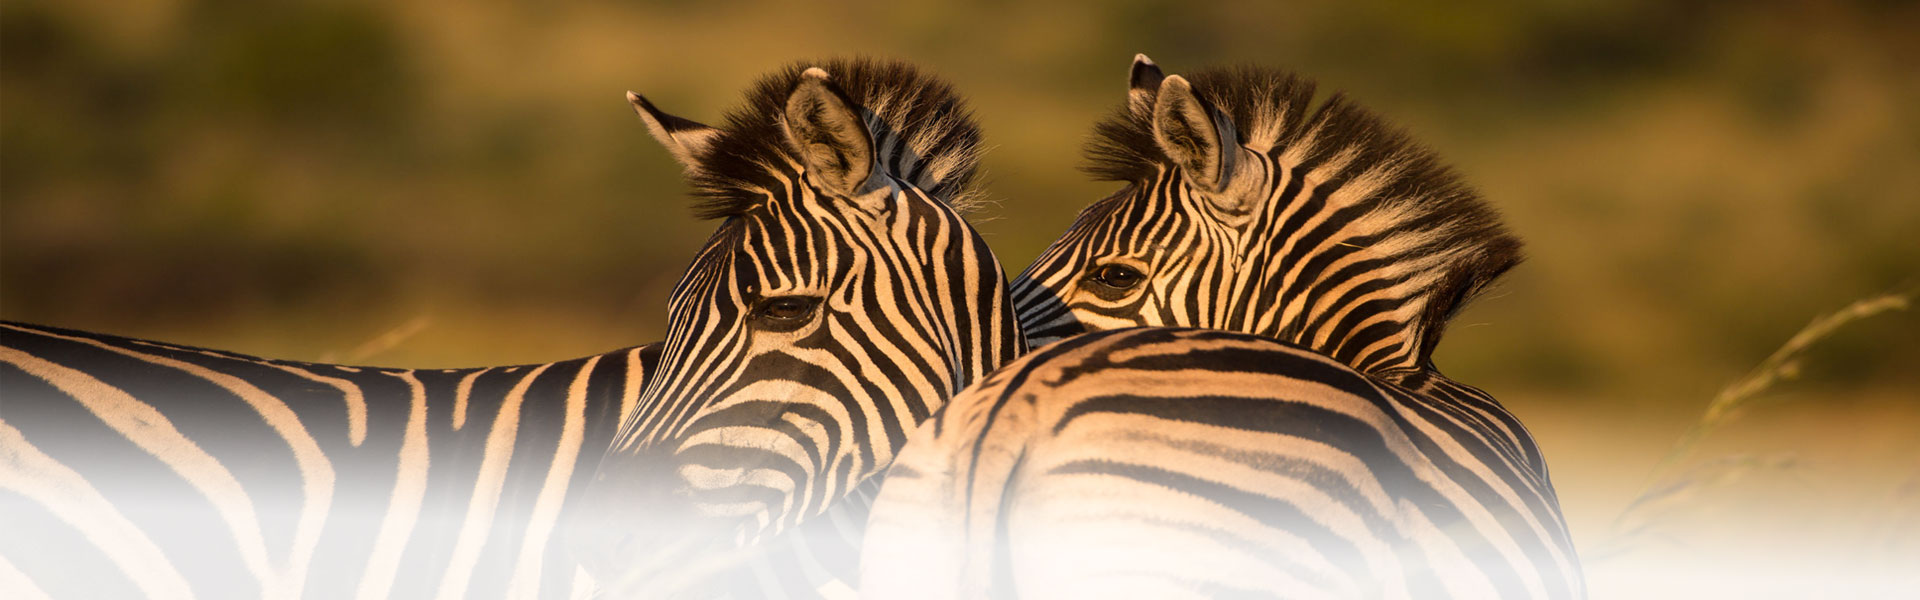 Two peaceful Zebras